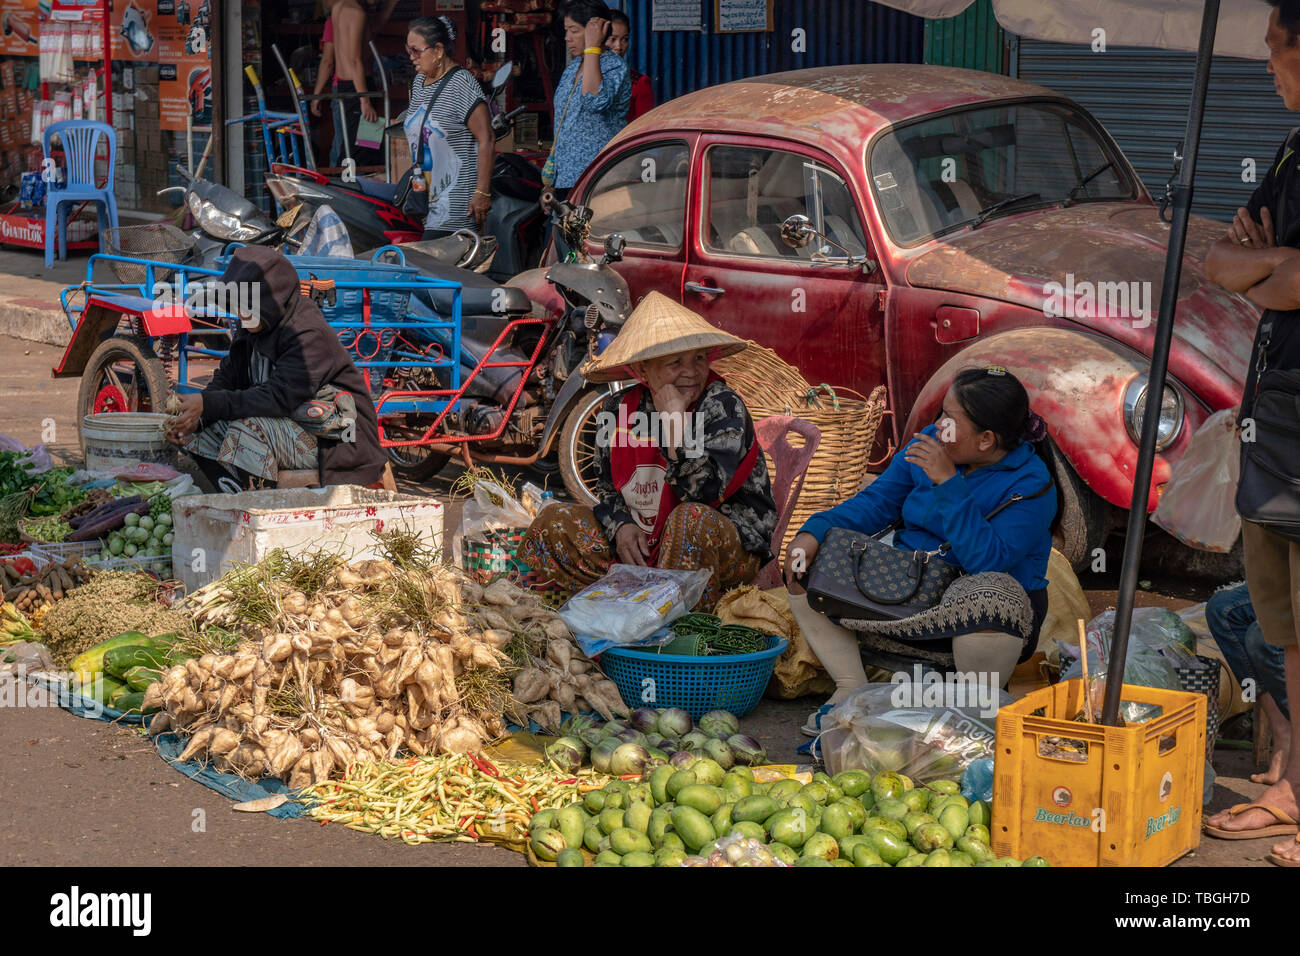 Old women selling fruits and vegetables near Daoheuang Market in Pakse, Laos backgroung VW Beetle, Oldtimer Stock Photo